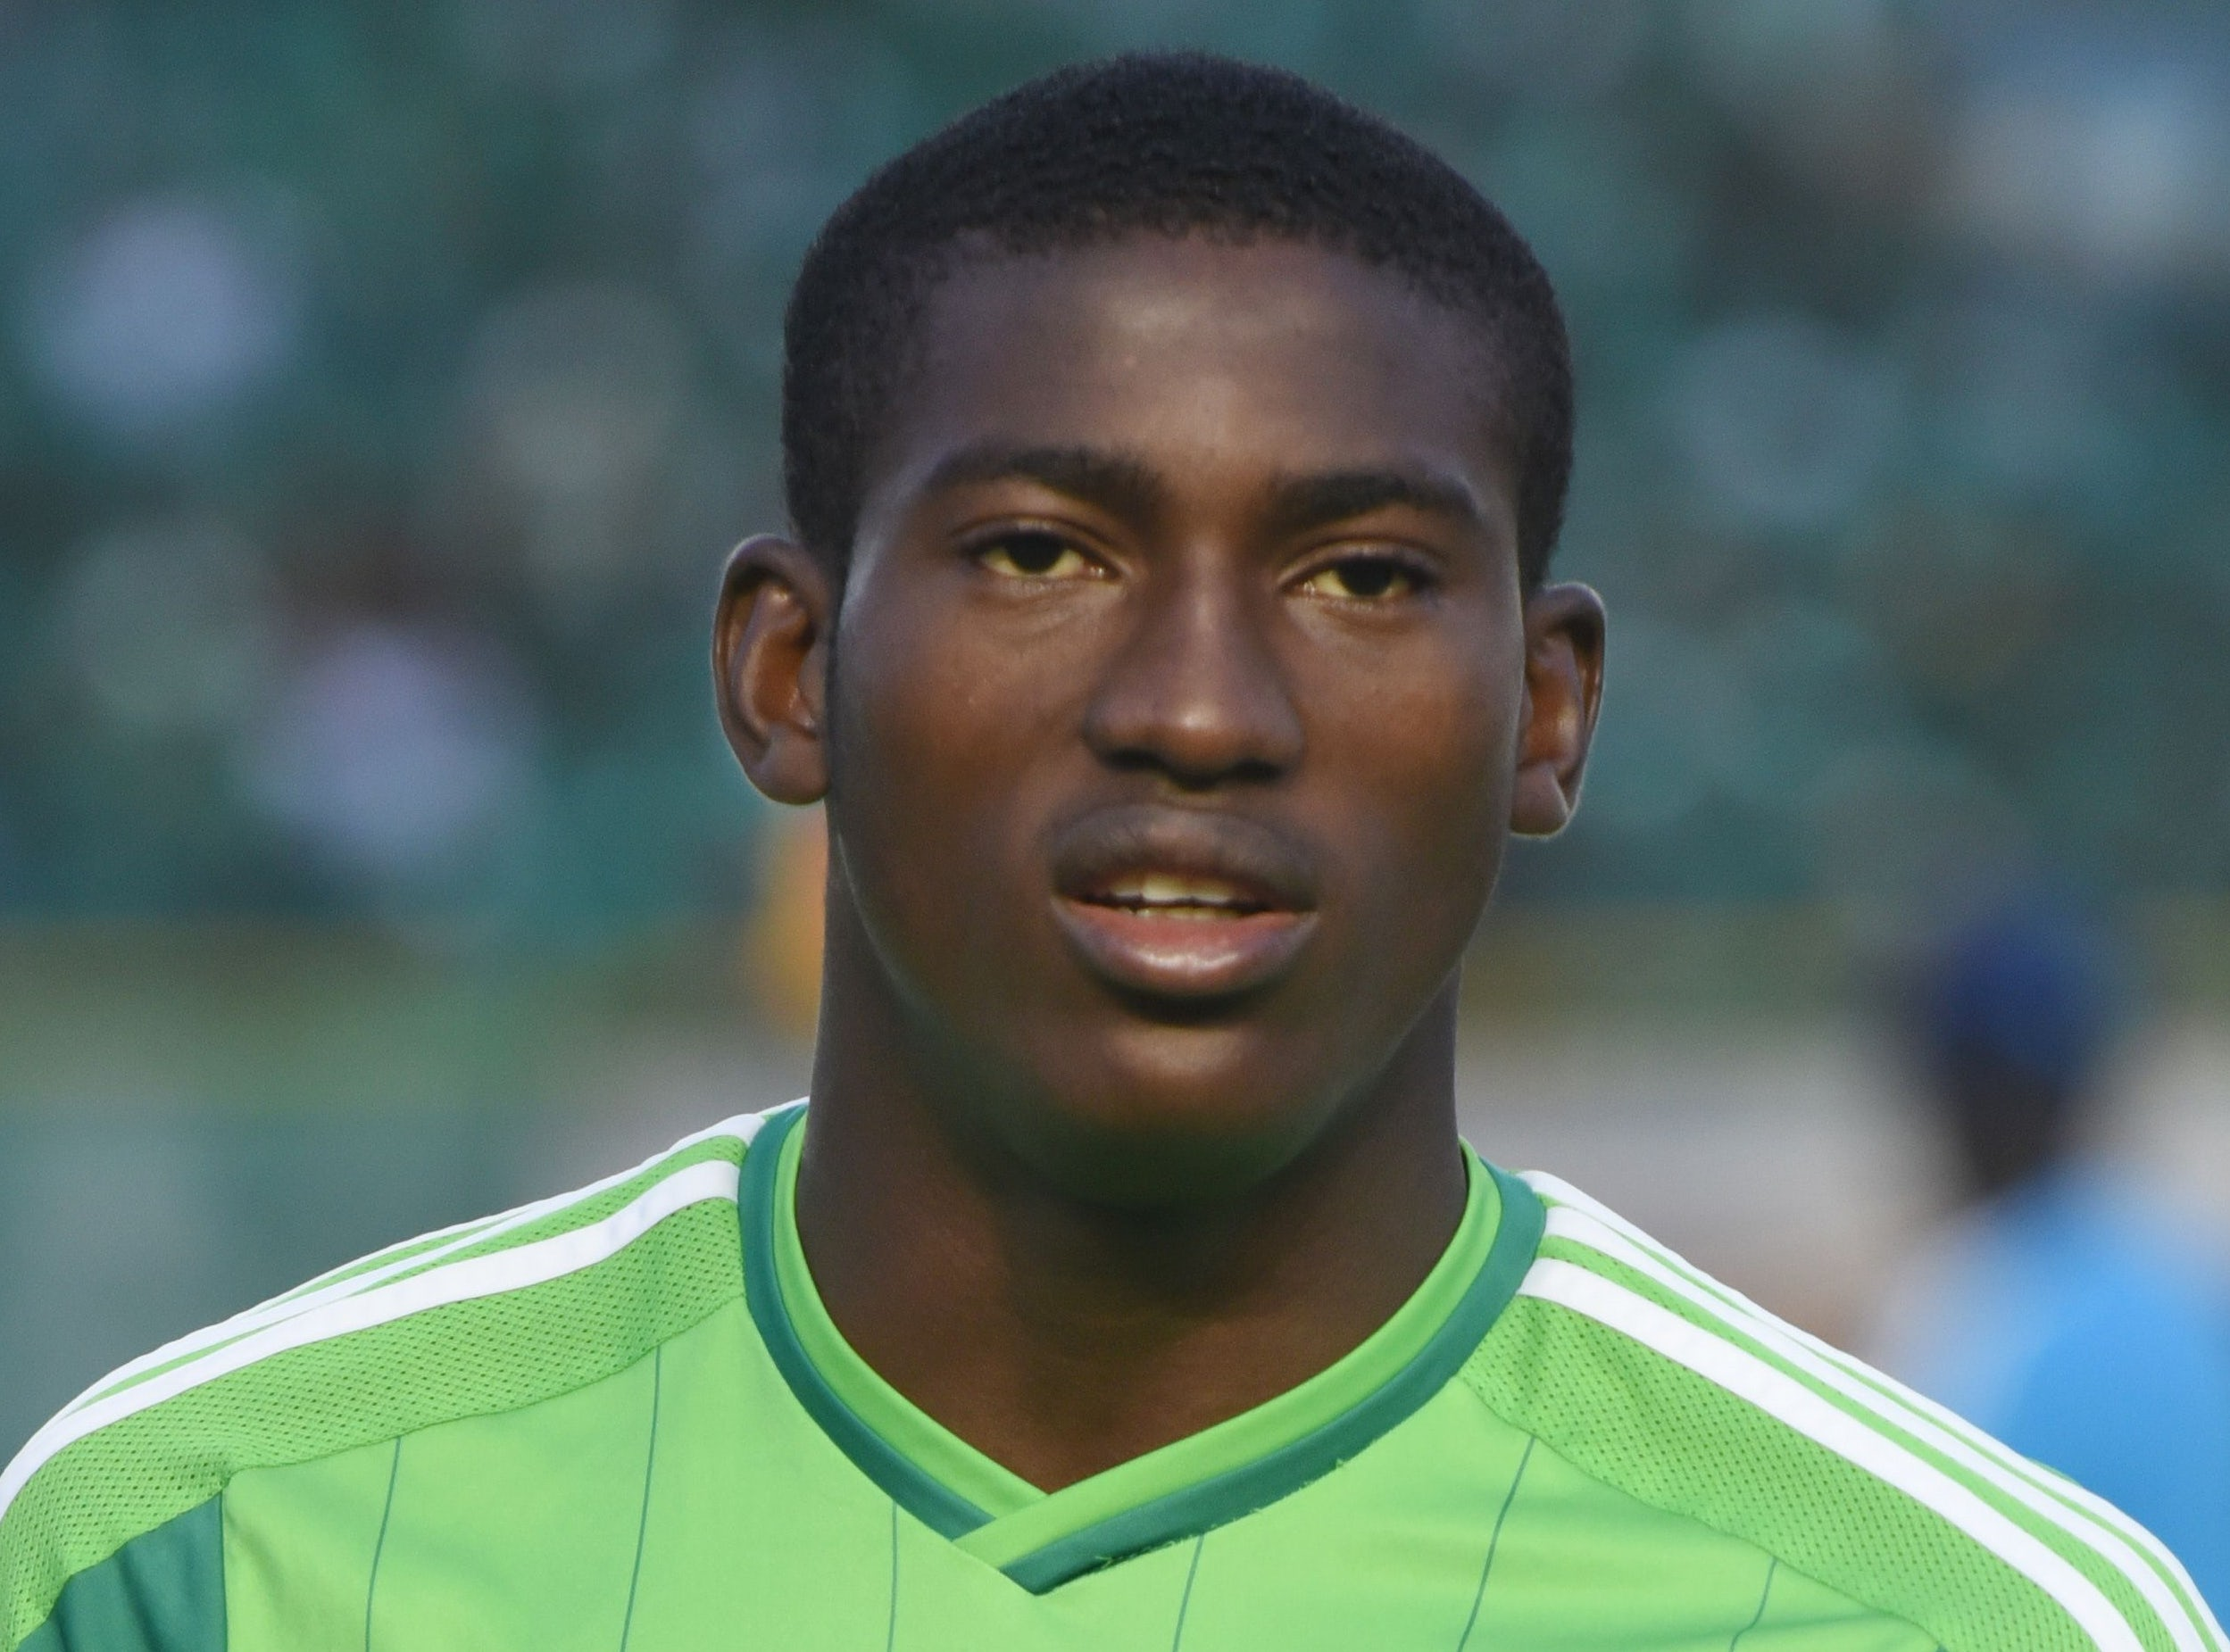 Nigerian player Awoniyi Taiwo Michael poses before the final football match of the 2015 African U-20 Championships Senegal against Nigeria, on March 22, 2015